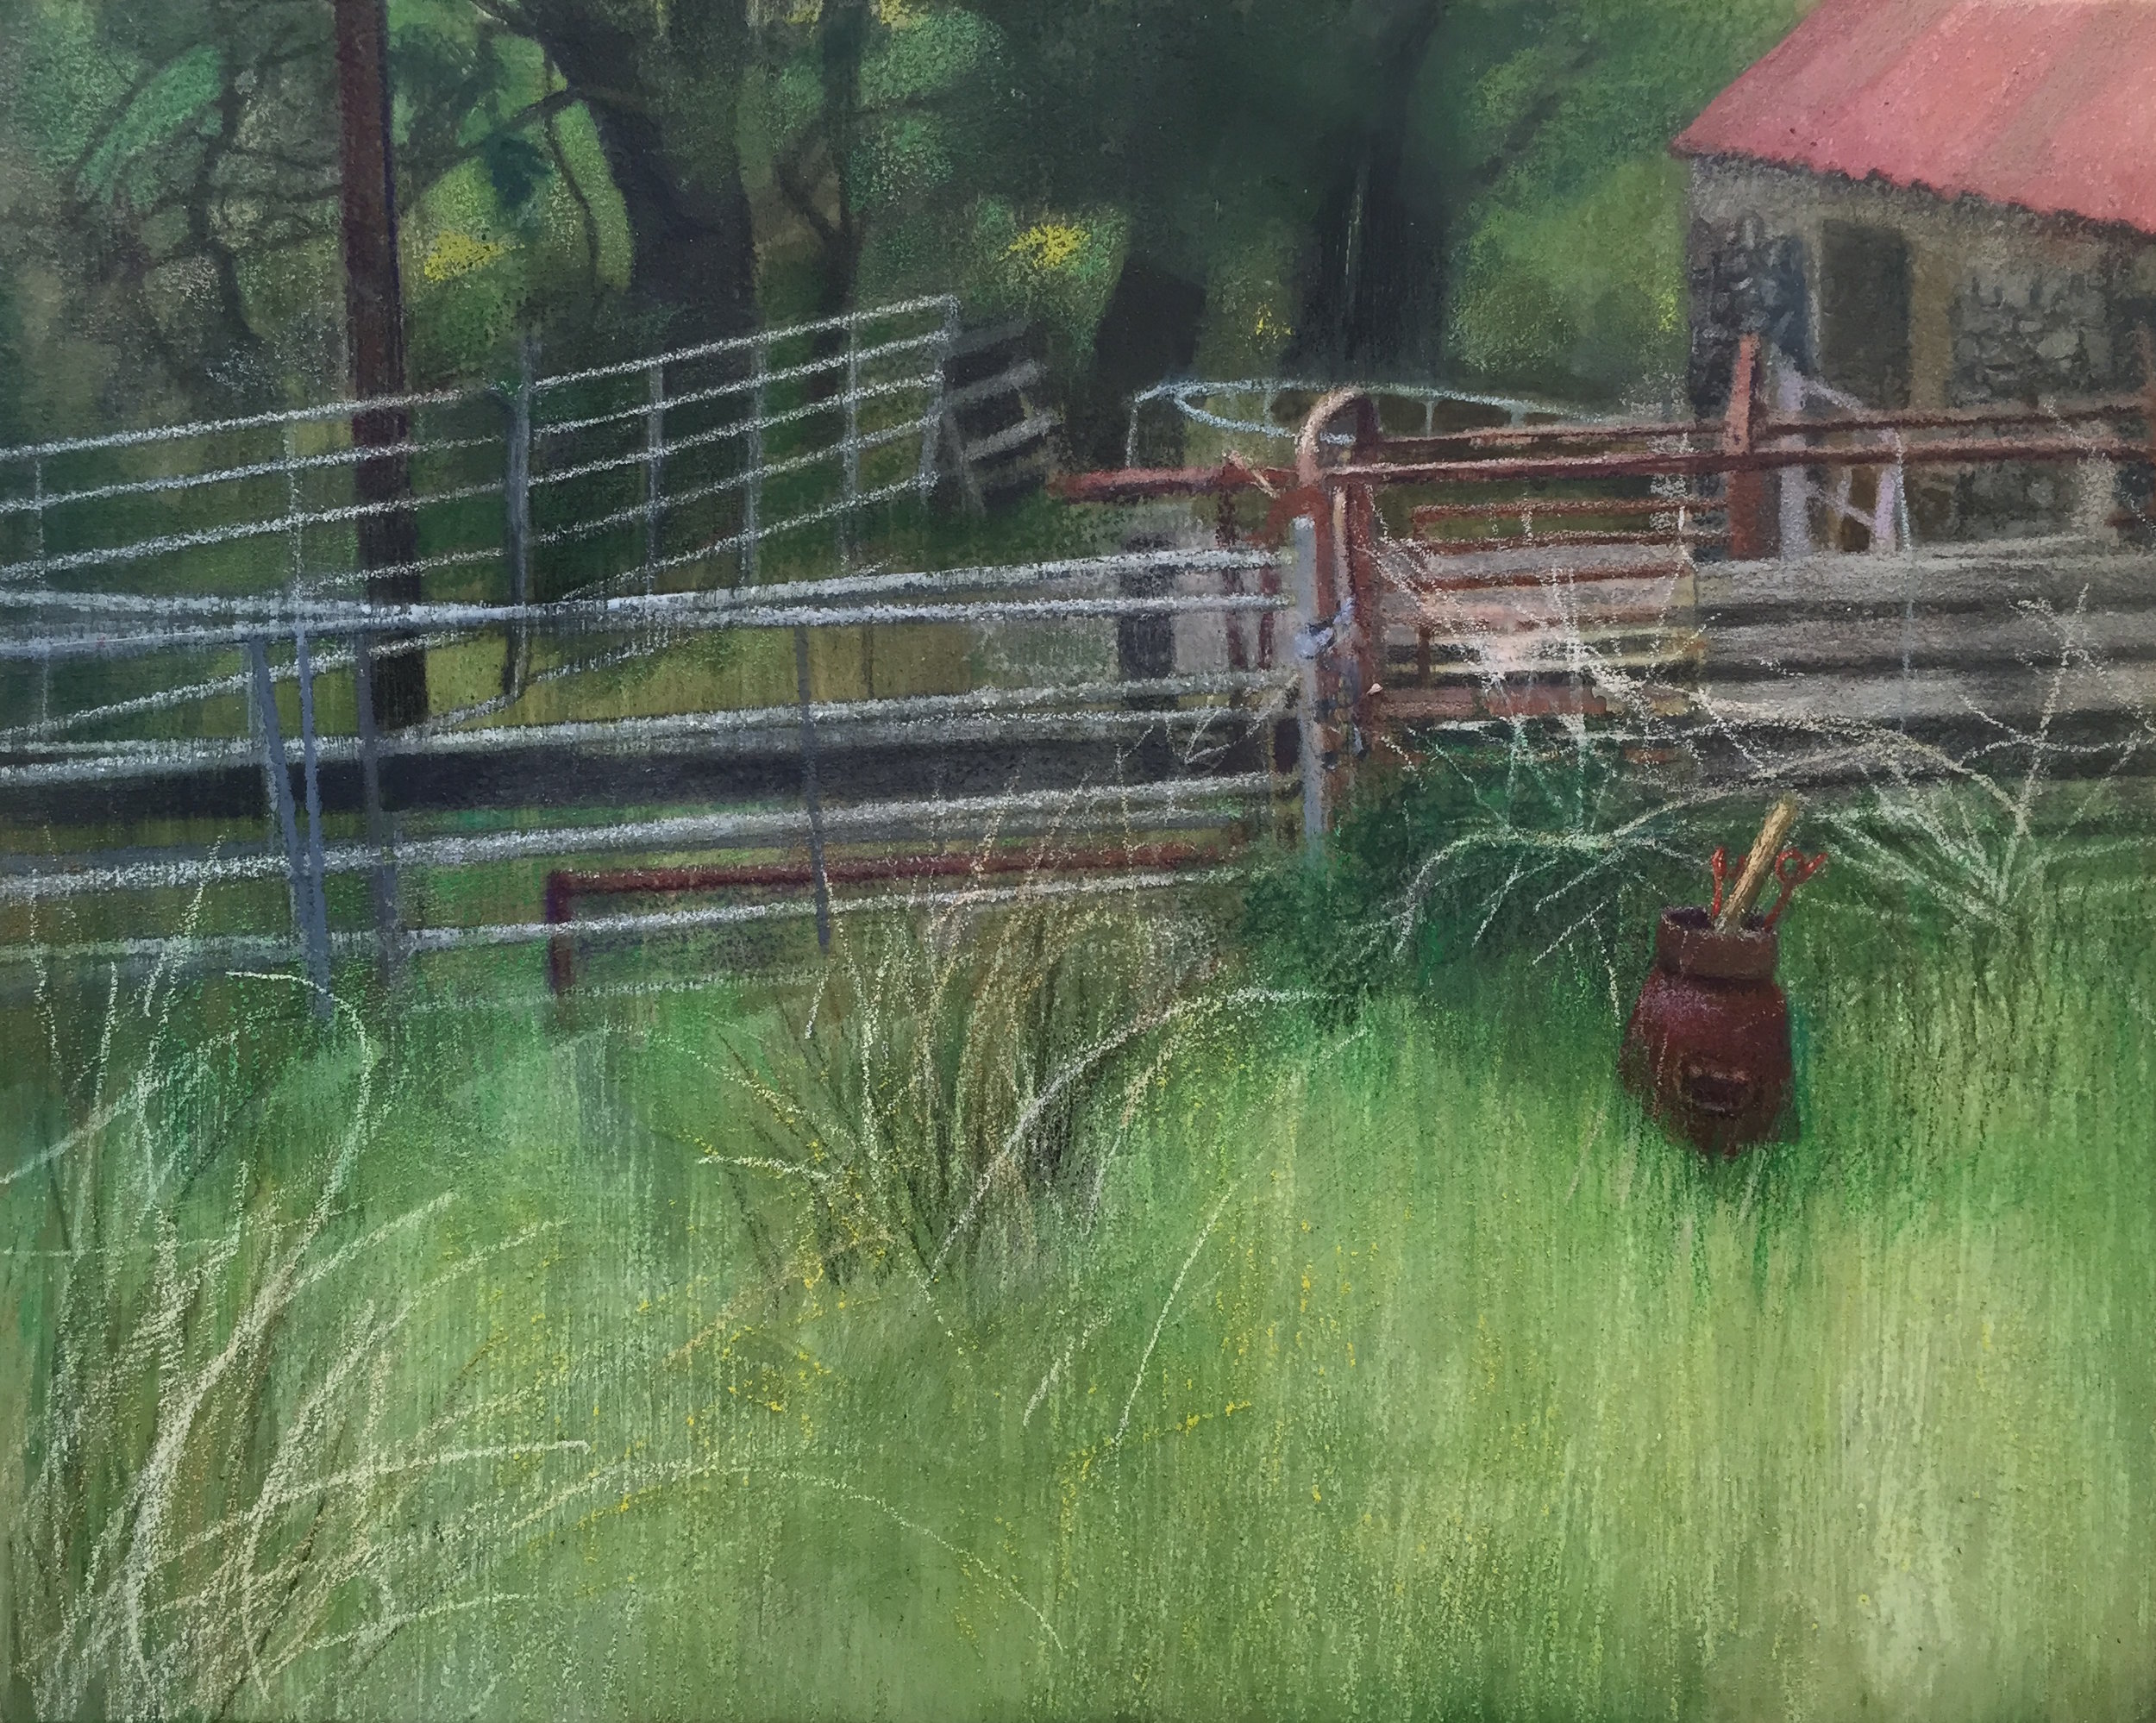 """Railing and Weeds  10""""x8"""" Mixed Media on Wood Panel"""